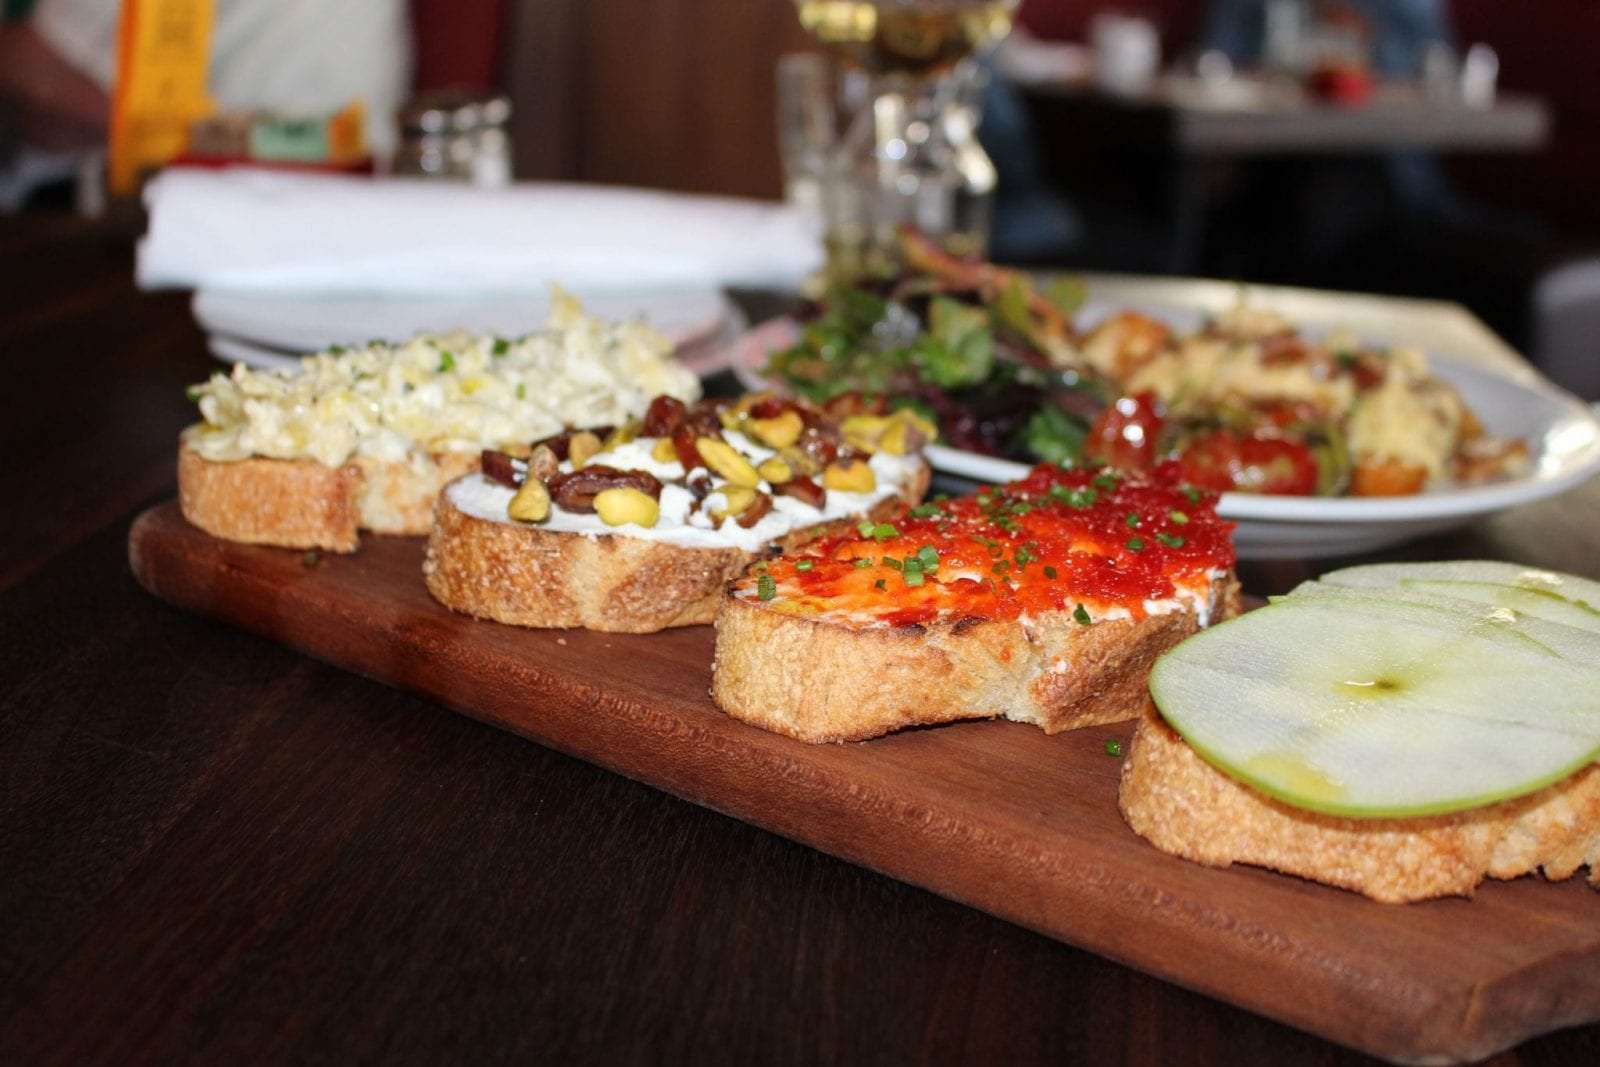 Bruschetta 4 Picks at Positano Cafe